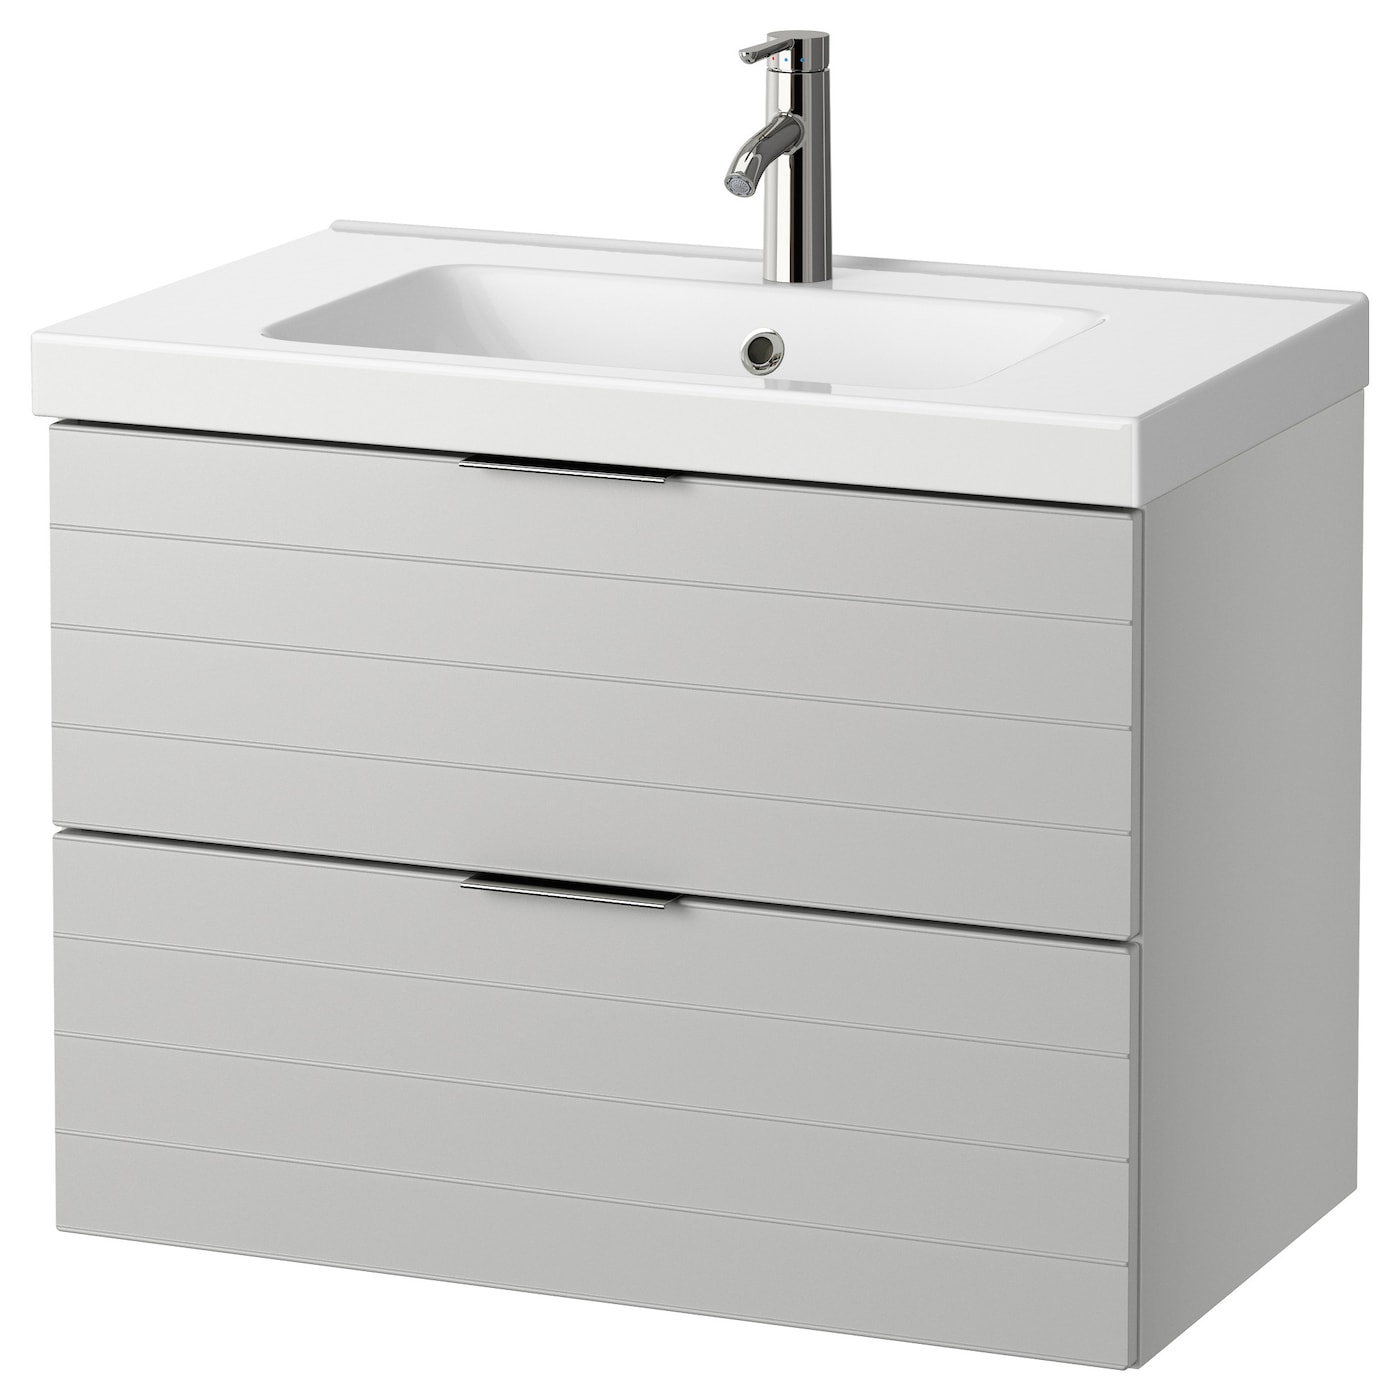 odensvik godmorgon meuble lavabo 2tir gris clair 80 x 49 x 64 cm ikea. Black Bedroom Furniture Sets. Home Design Ideas